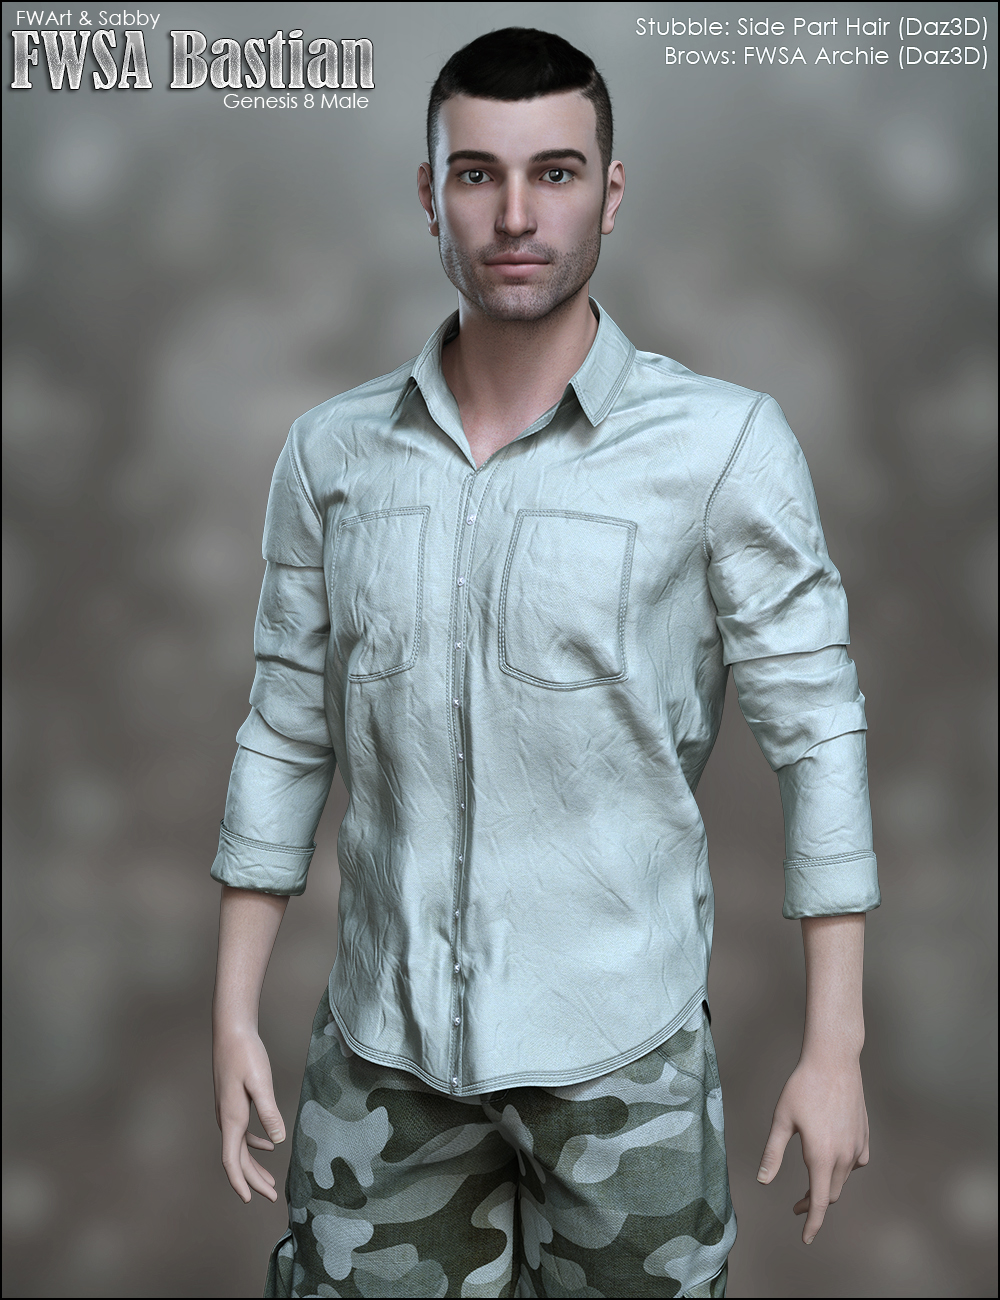 FWSA Bastian for Genesis 8 Male by Sabby